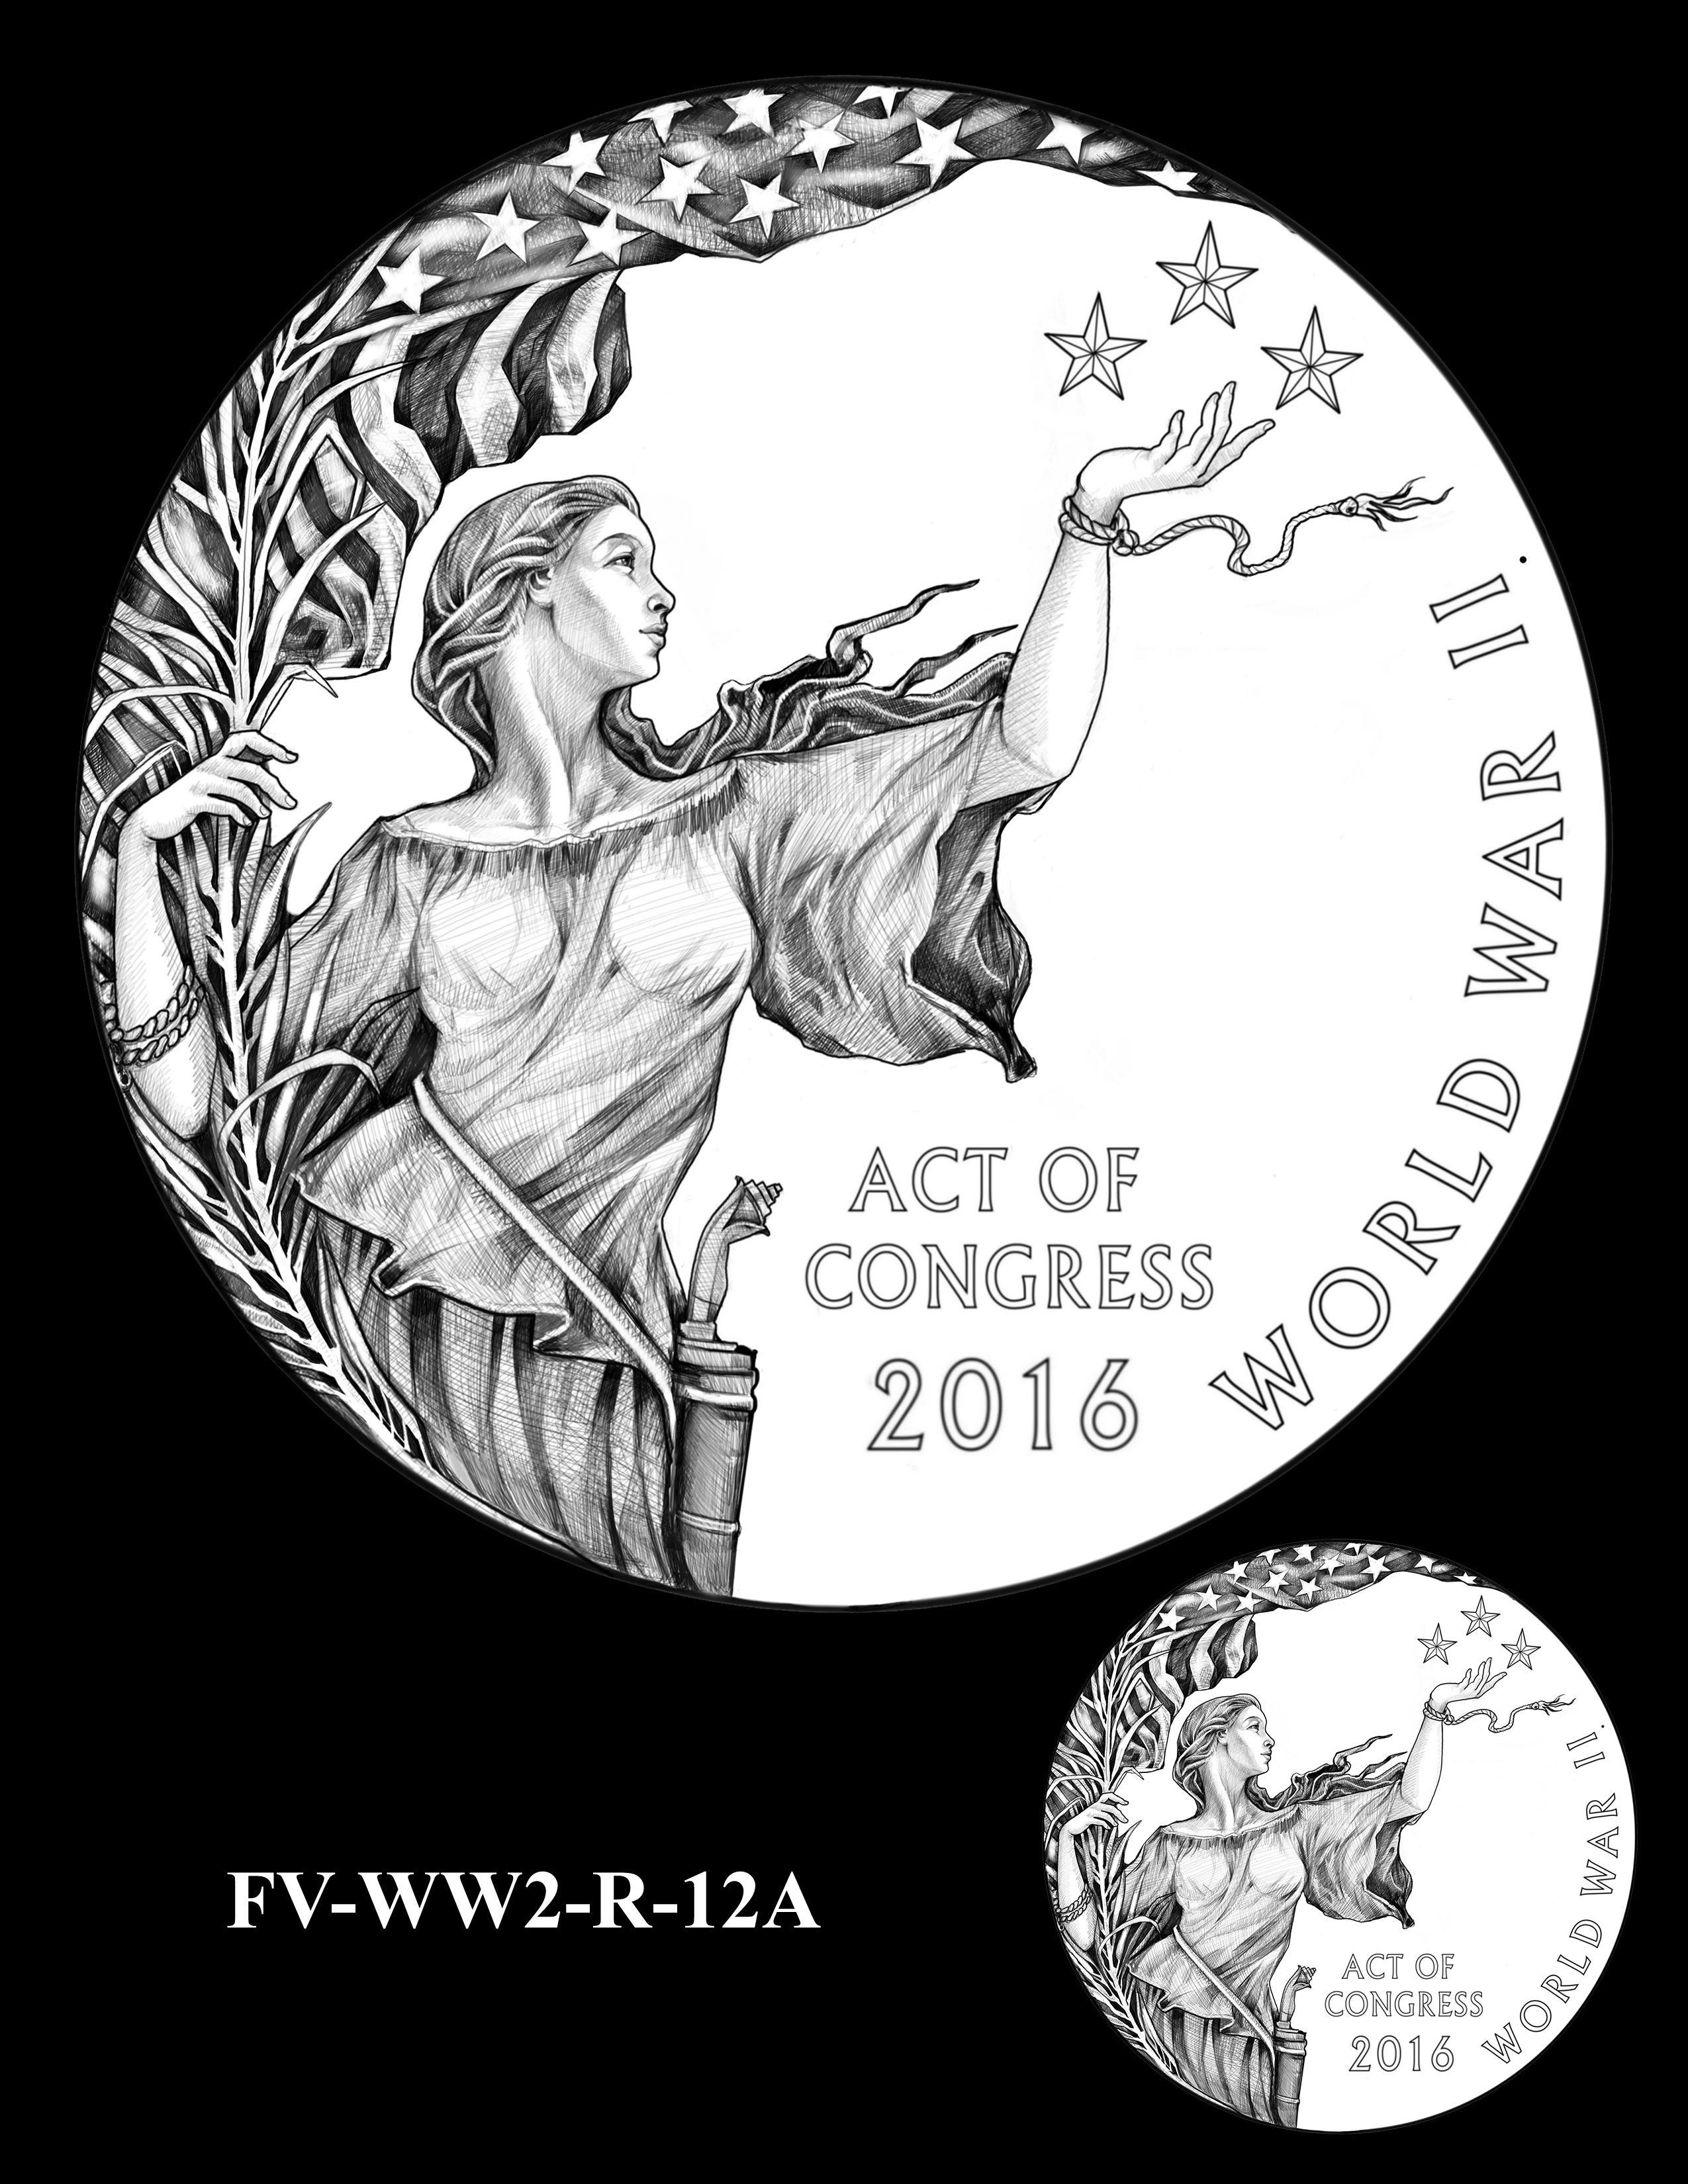 FVWW2-R-12A -- Filipino Veterans of World War II Congressional Gold Medal